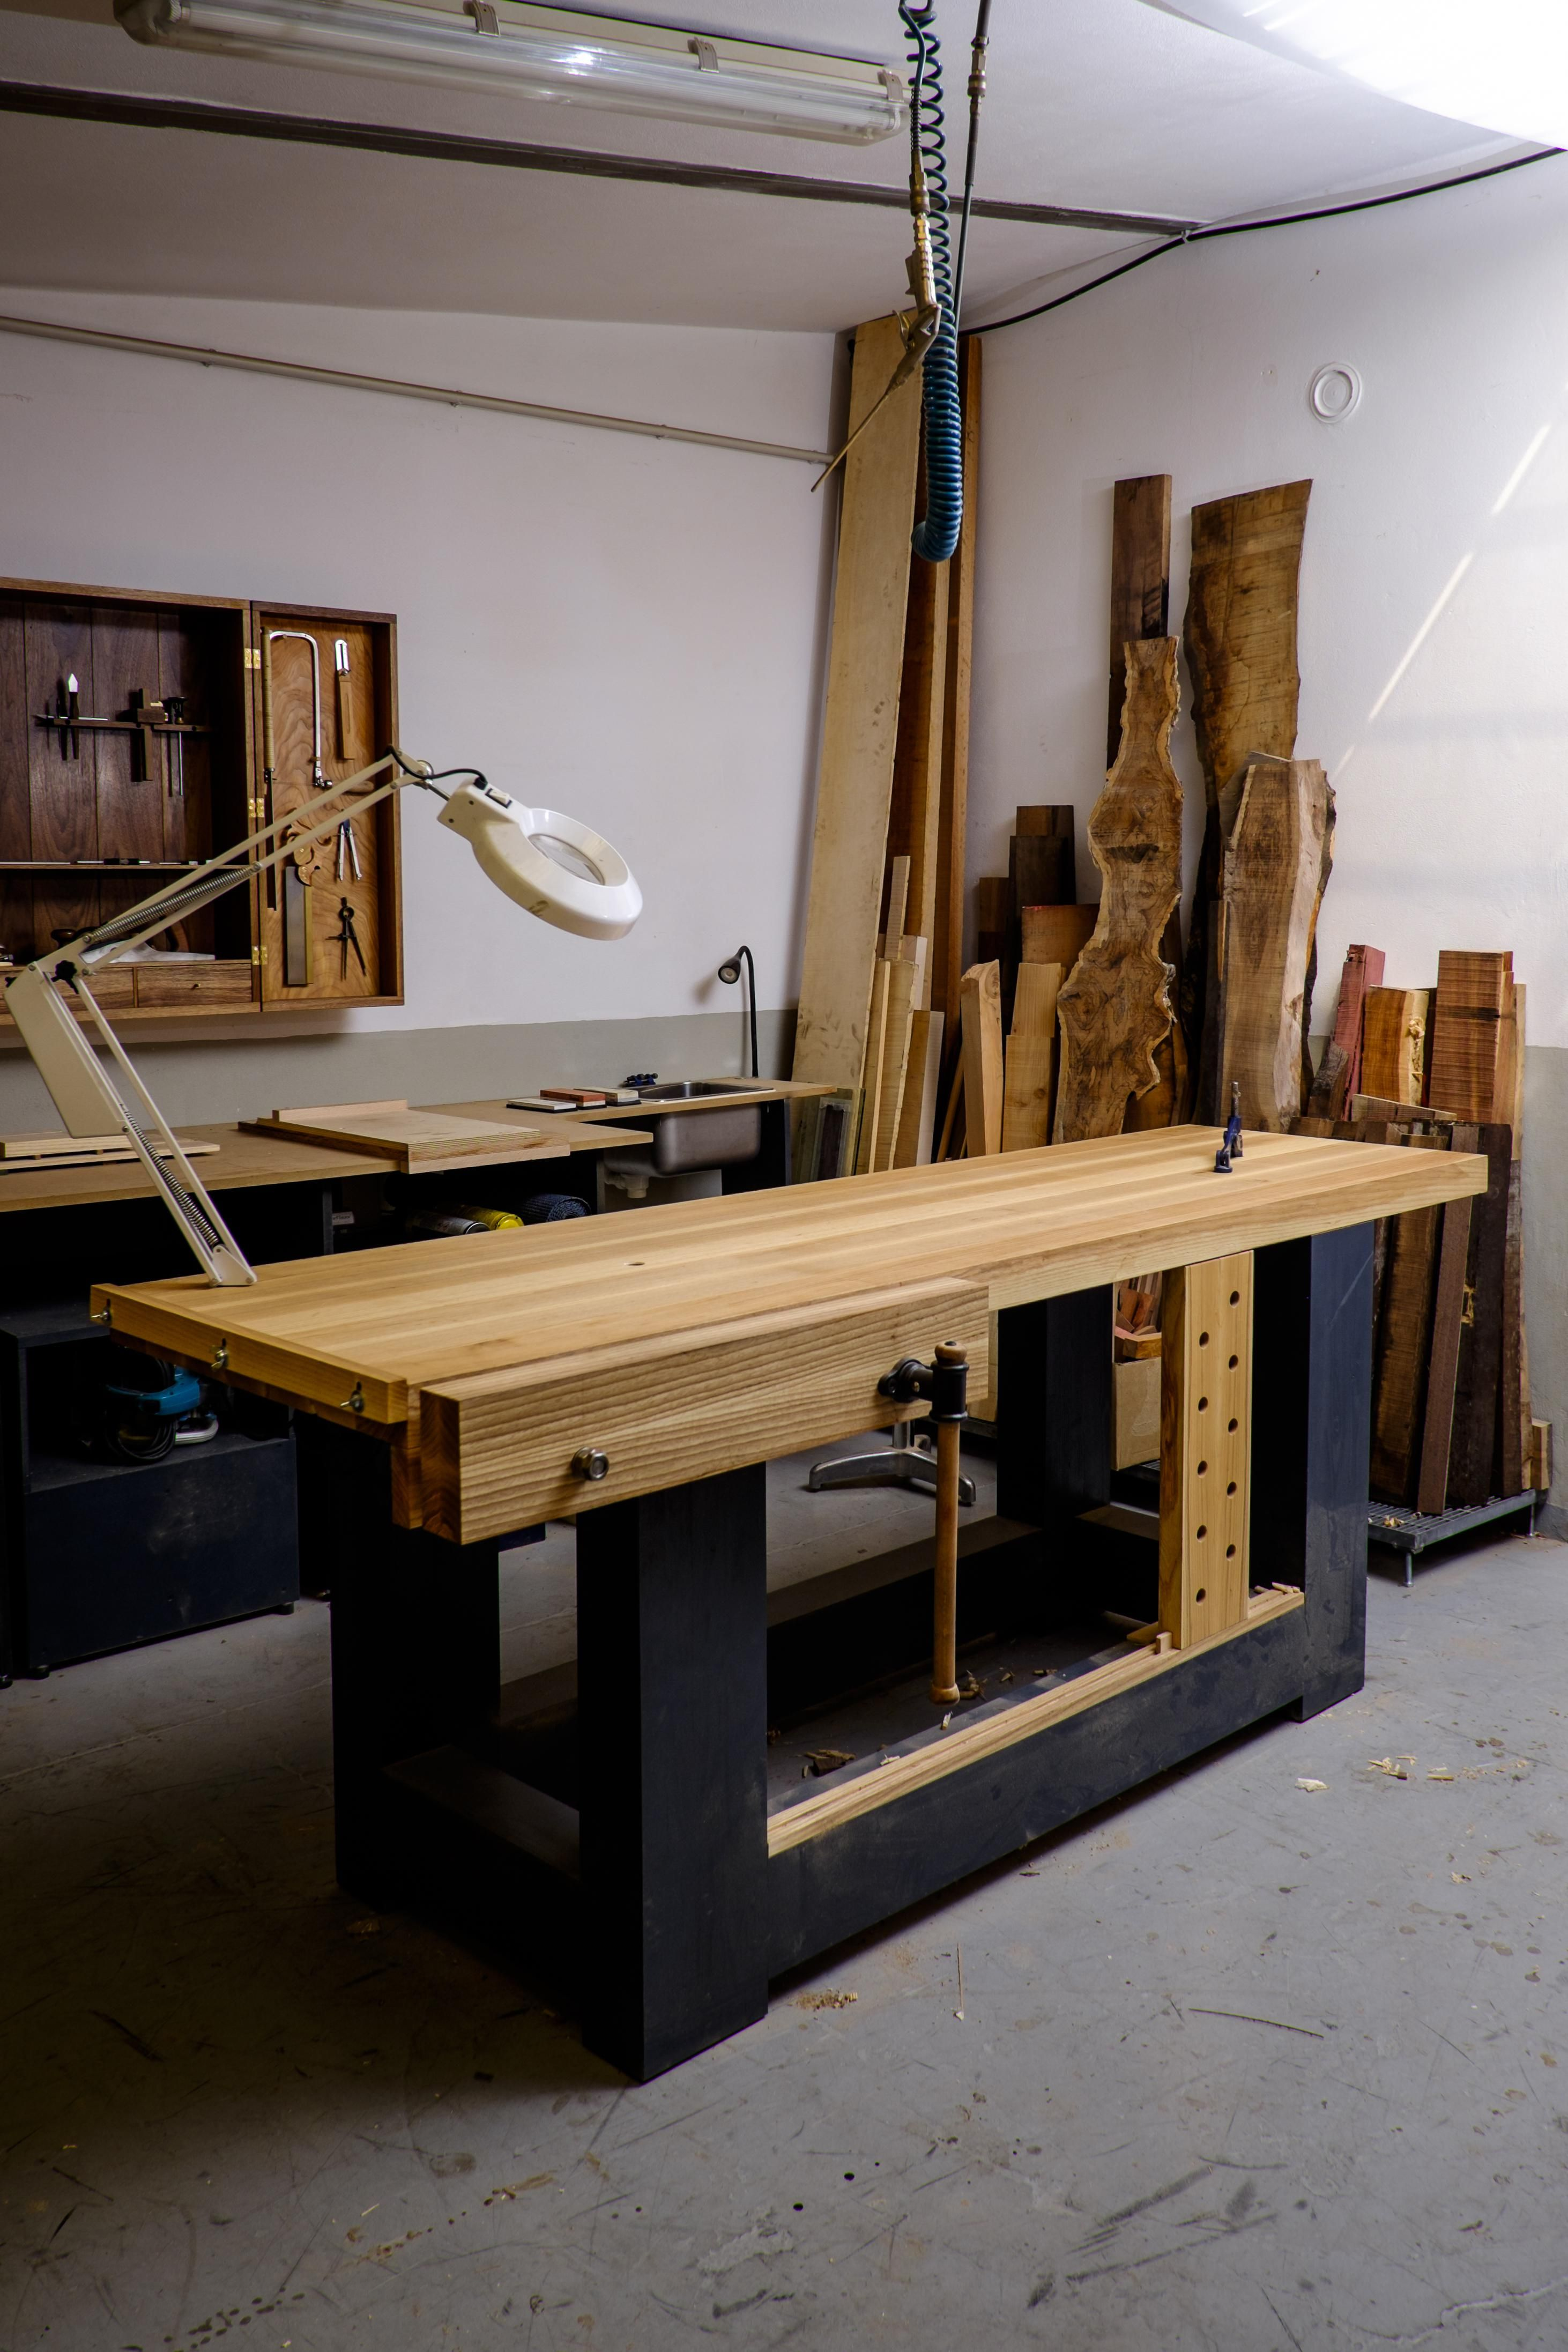 I actually can't imagine woodworking without a proper